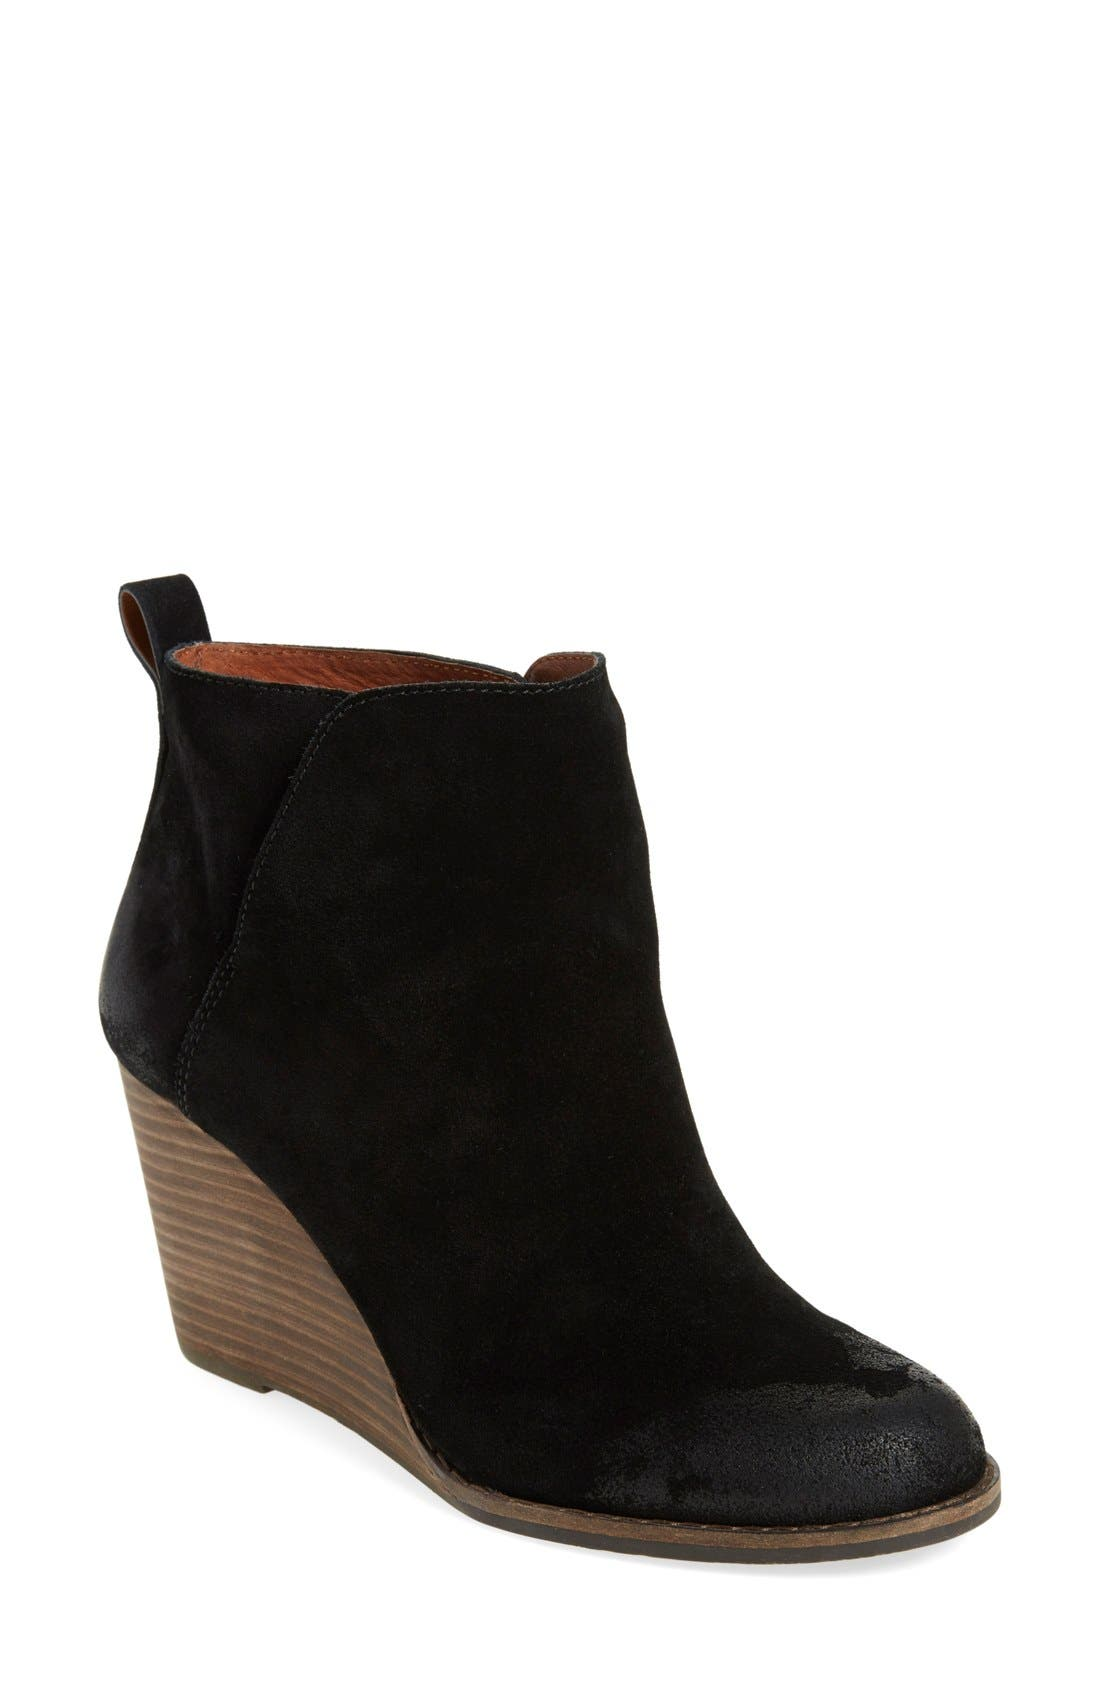 Alternate Image 1 Selected - Lucky Brand 'Yezzah' Wedge Bootie (Women)